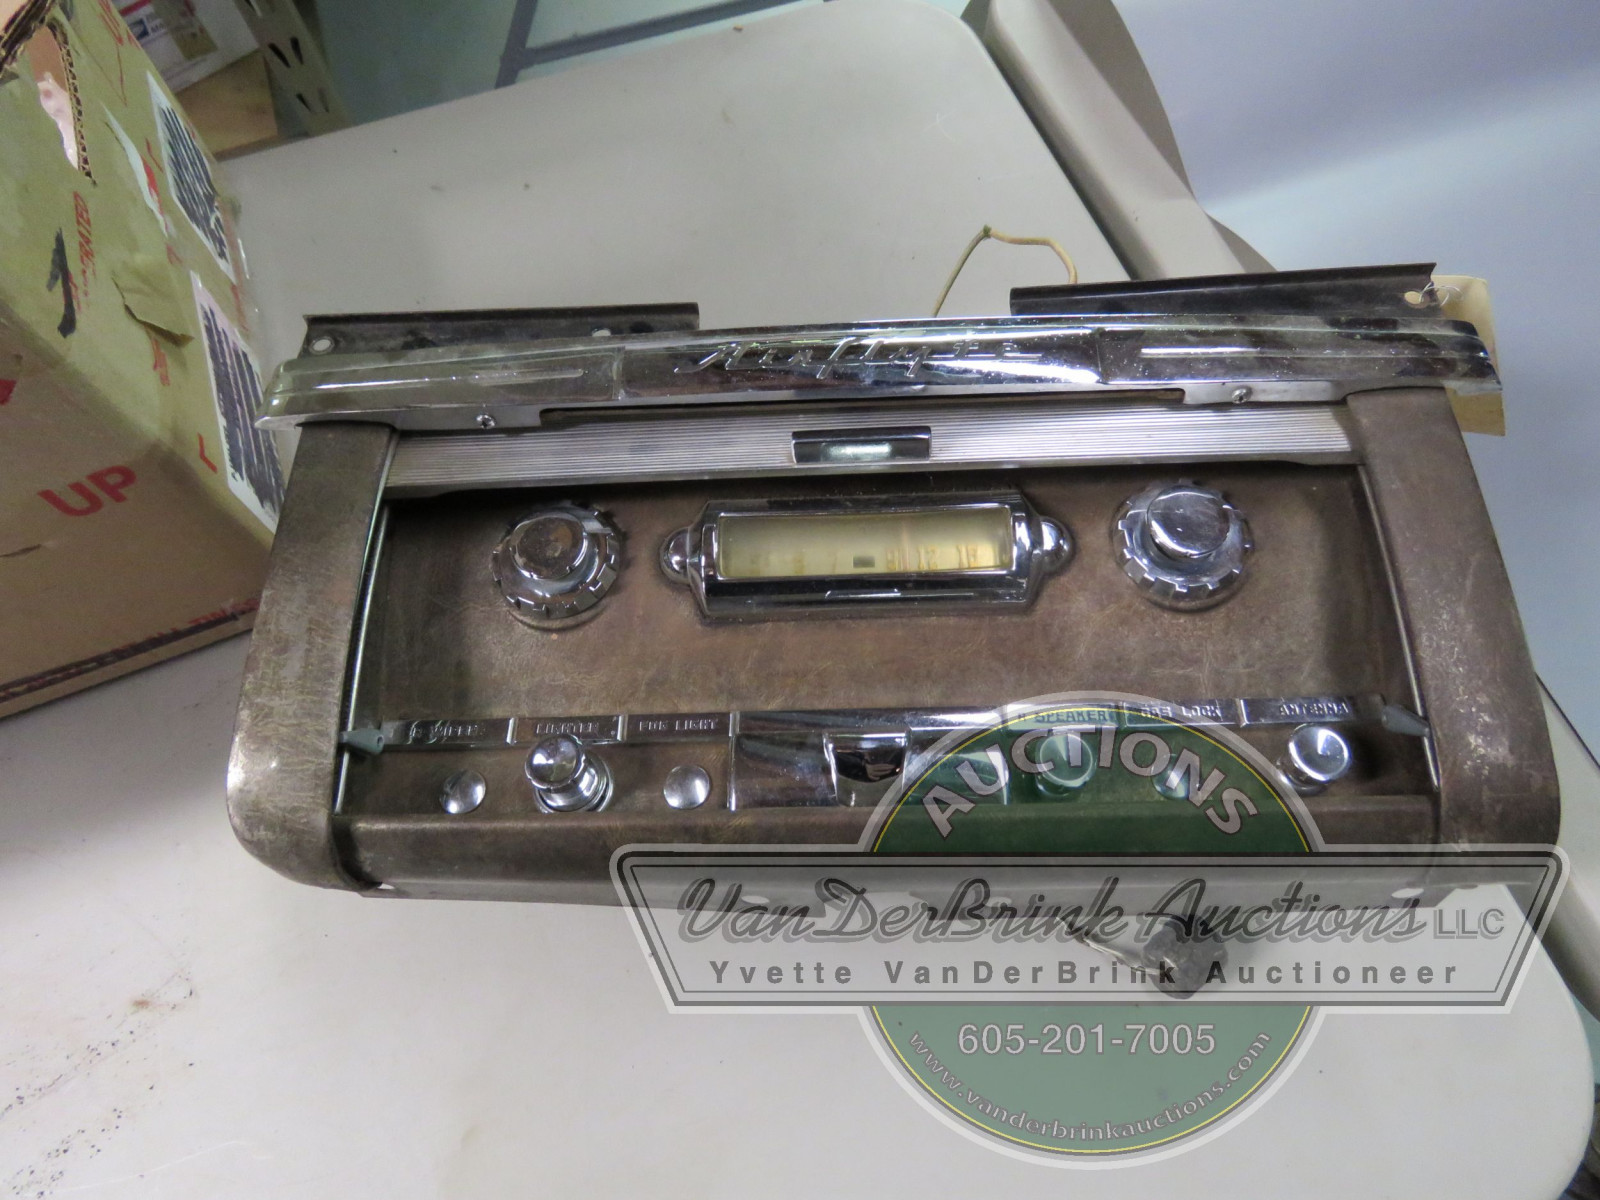 RARE NASH GLOVE BOX WITH HIDEAWAY RADIO - Image 3